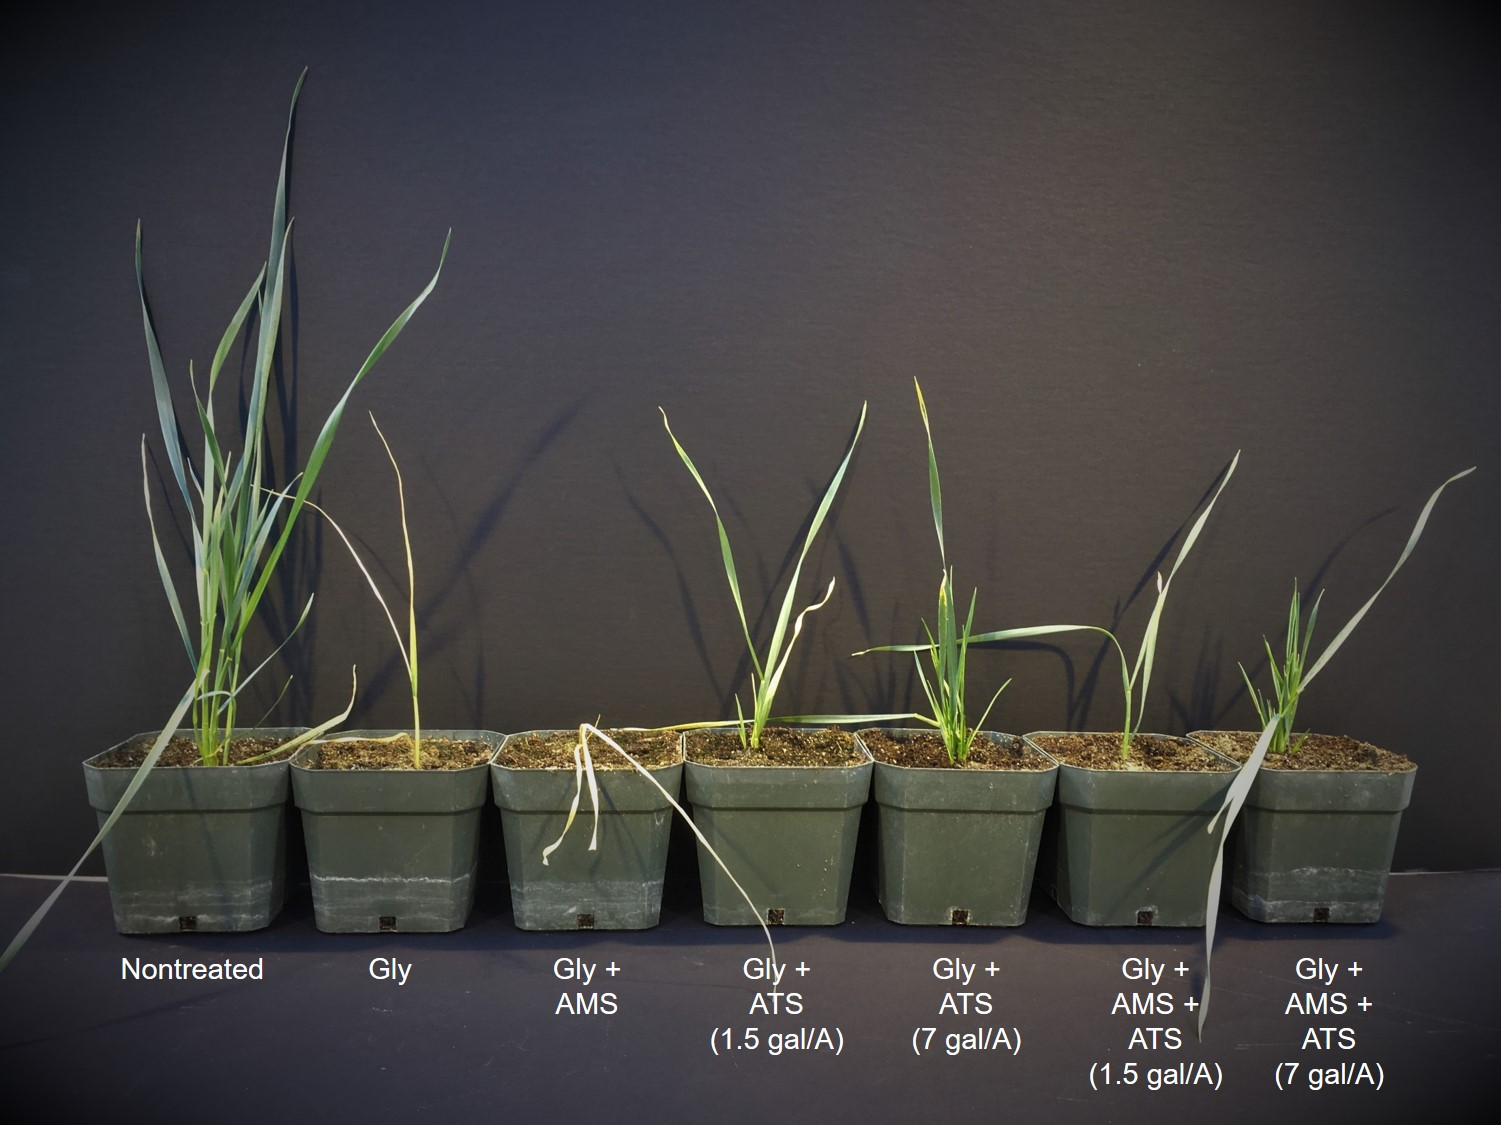 Effect of ammonium thiosulfate (ATS) on glyphosate activity on wheat 11 days after treatment